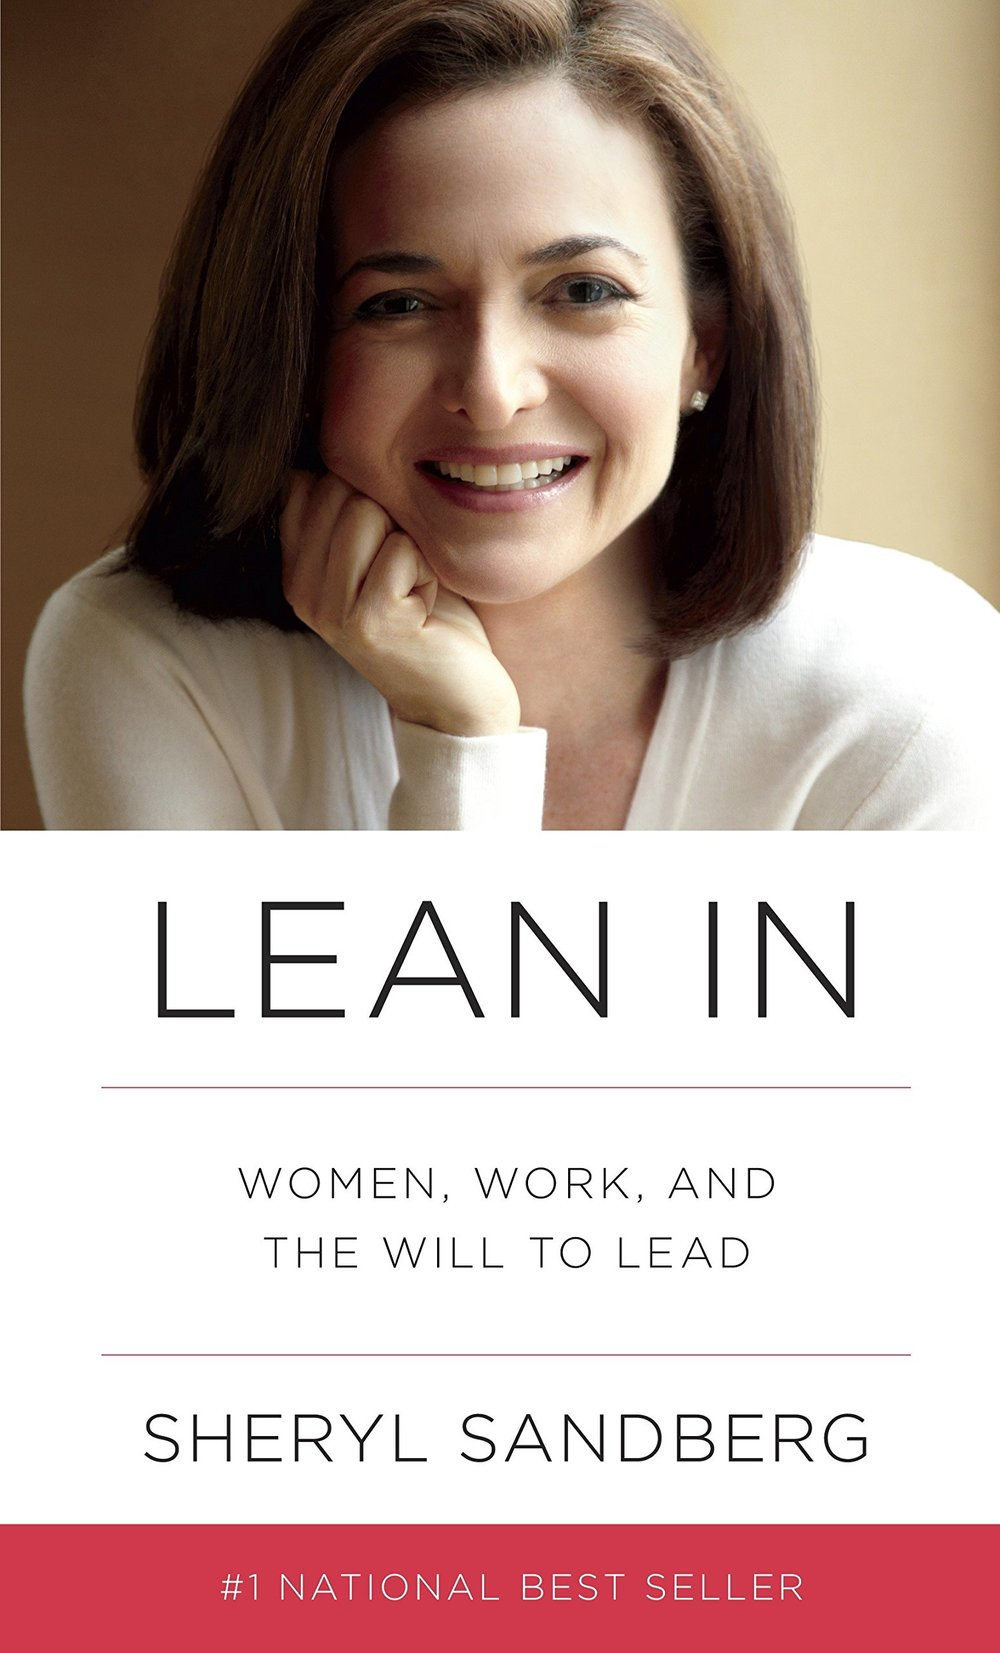 Lean In Women, Work, and the Will to Lead.jpg